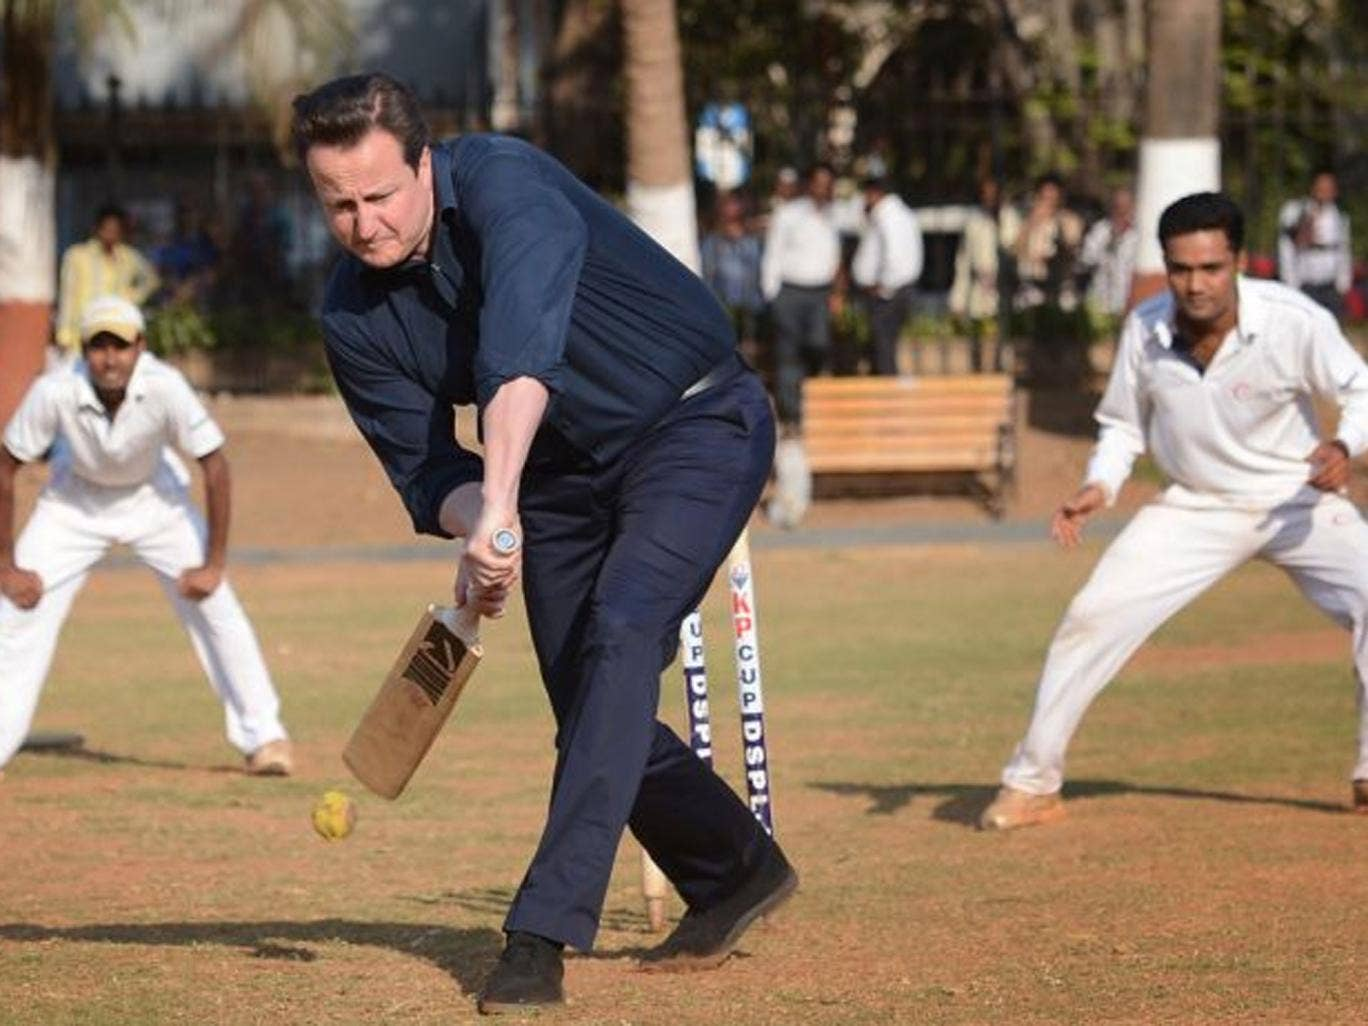 Prime Minister David Cameron plays cricket with Indian boys at the Oval Maidan, a communal cricket pitch in the centre of Mumbai, India